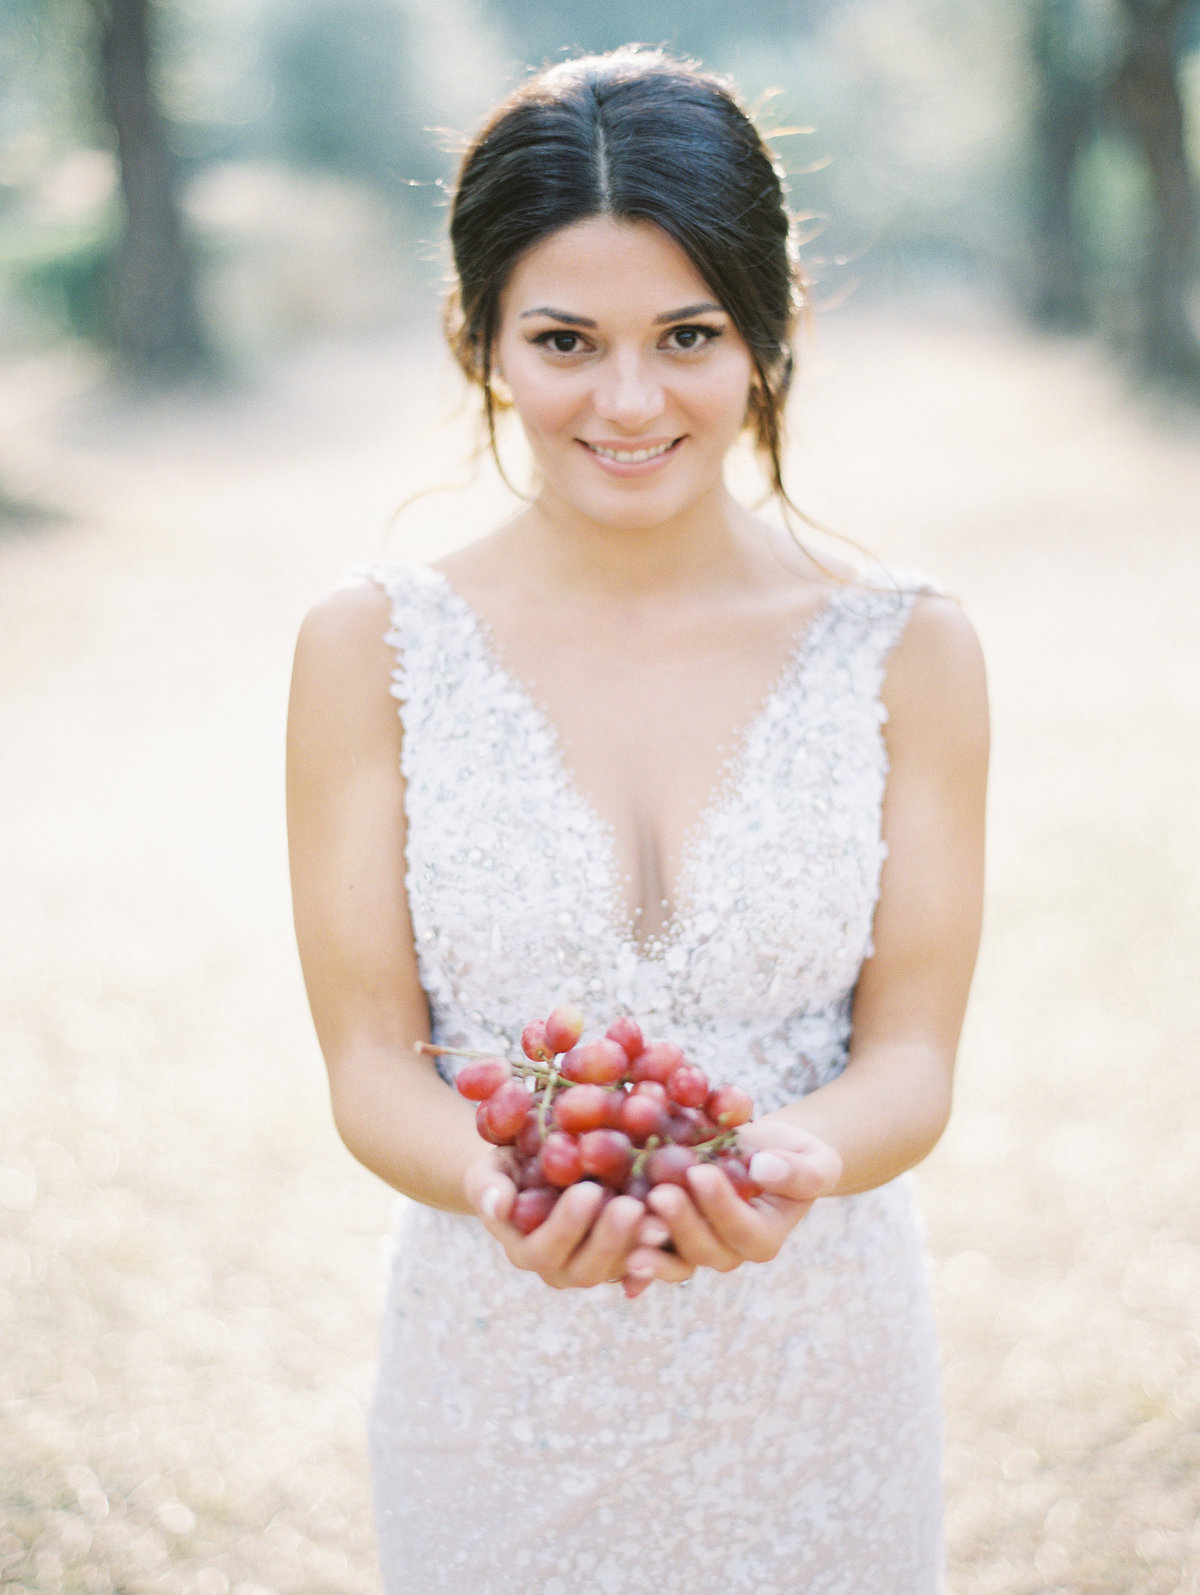 fine art wedding photography in corfu by Kostis Mouselimis on film_029